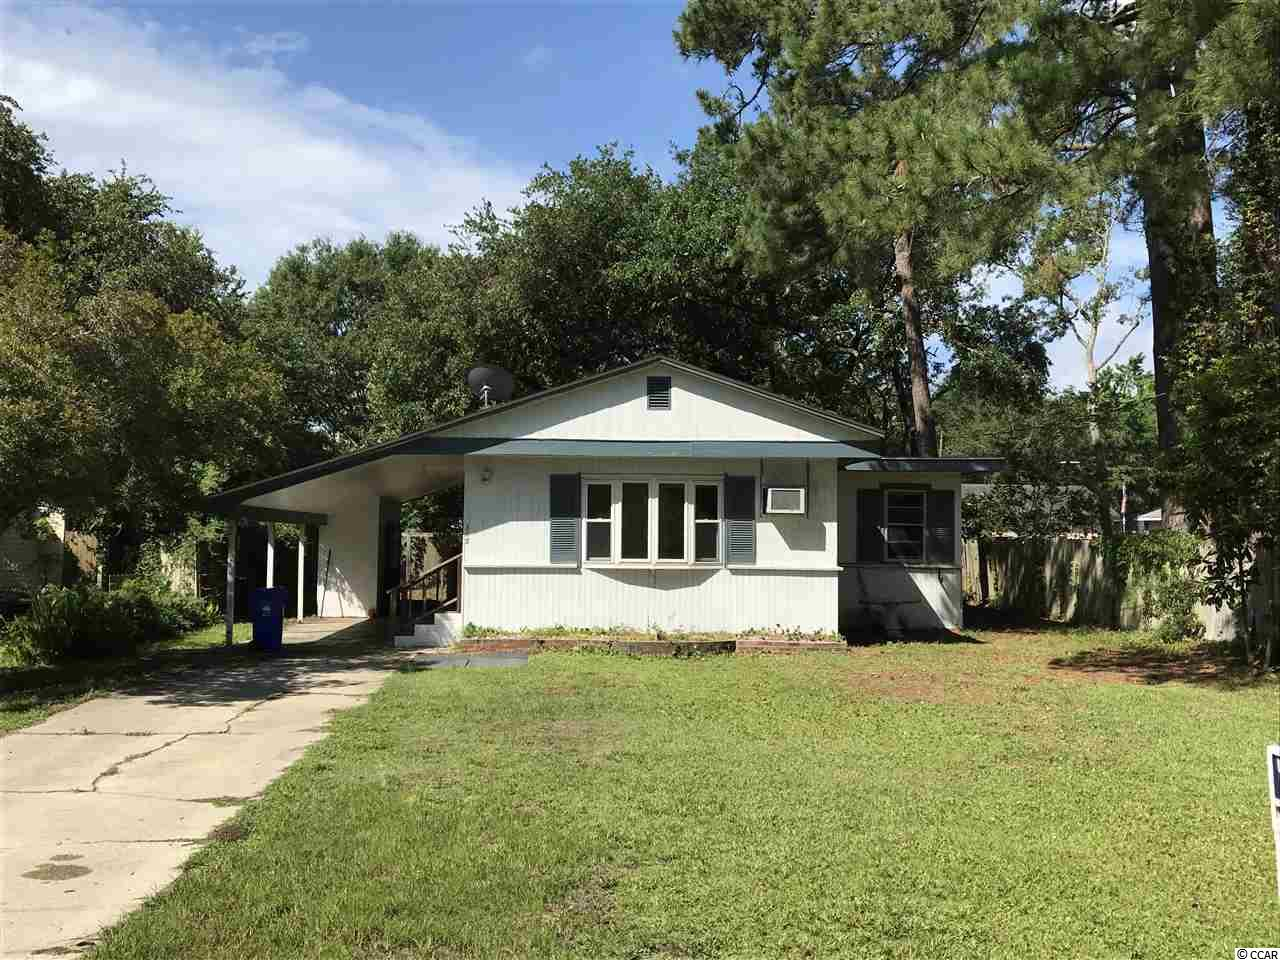 Single Family Home for Sale at 515 Cypress Drive S 515 Cypress Drive S Surfside Beach, South Carolina 29575 United States